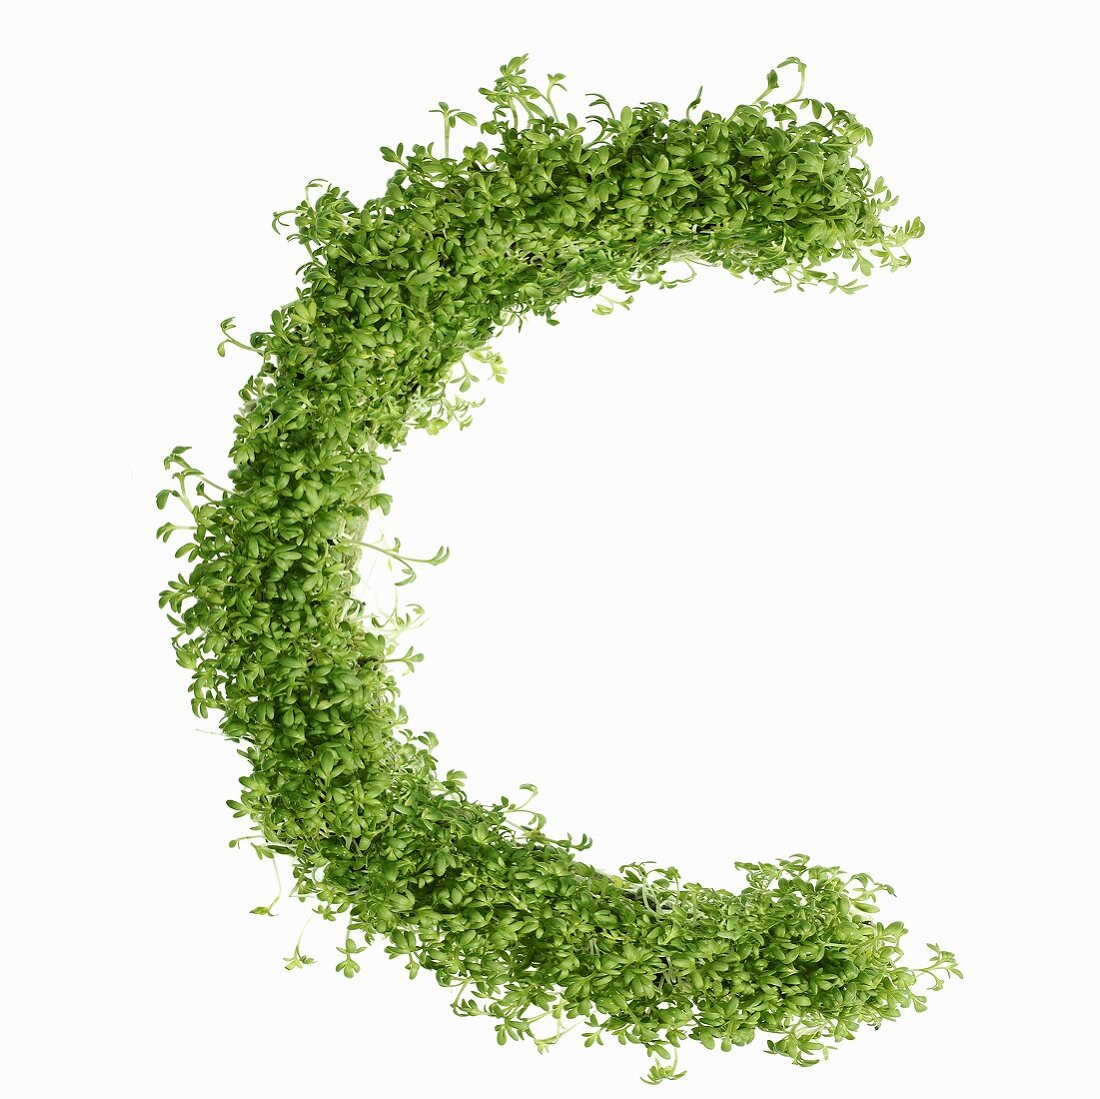 The letter C in cress